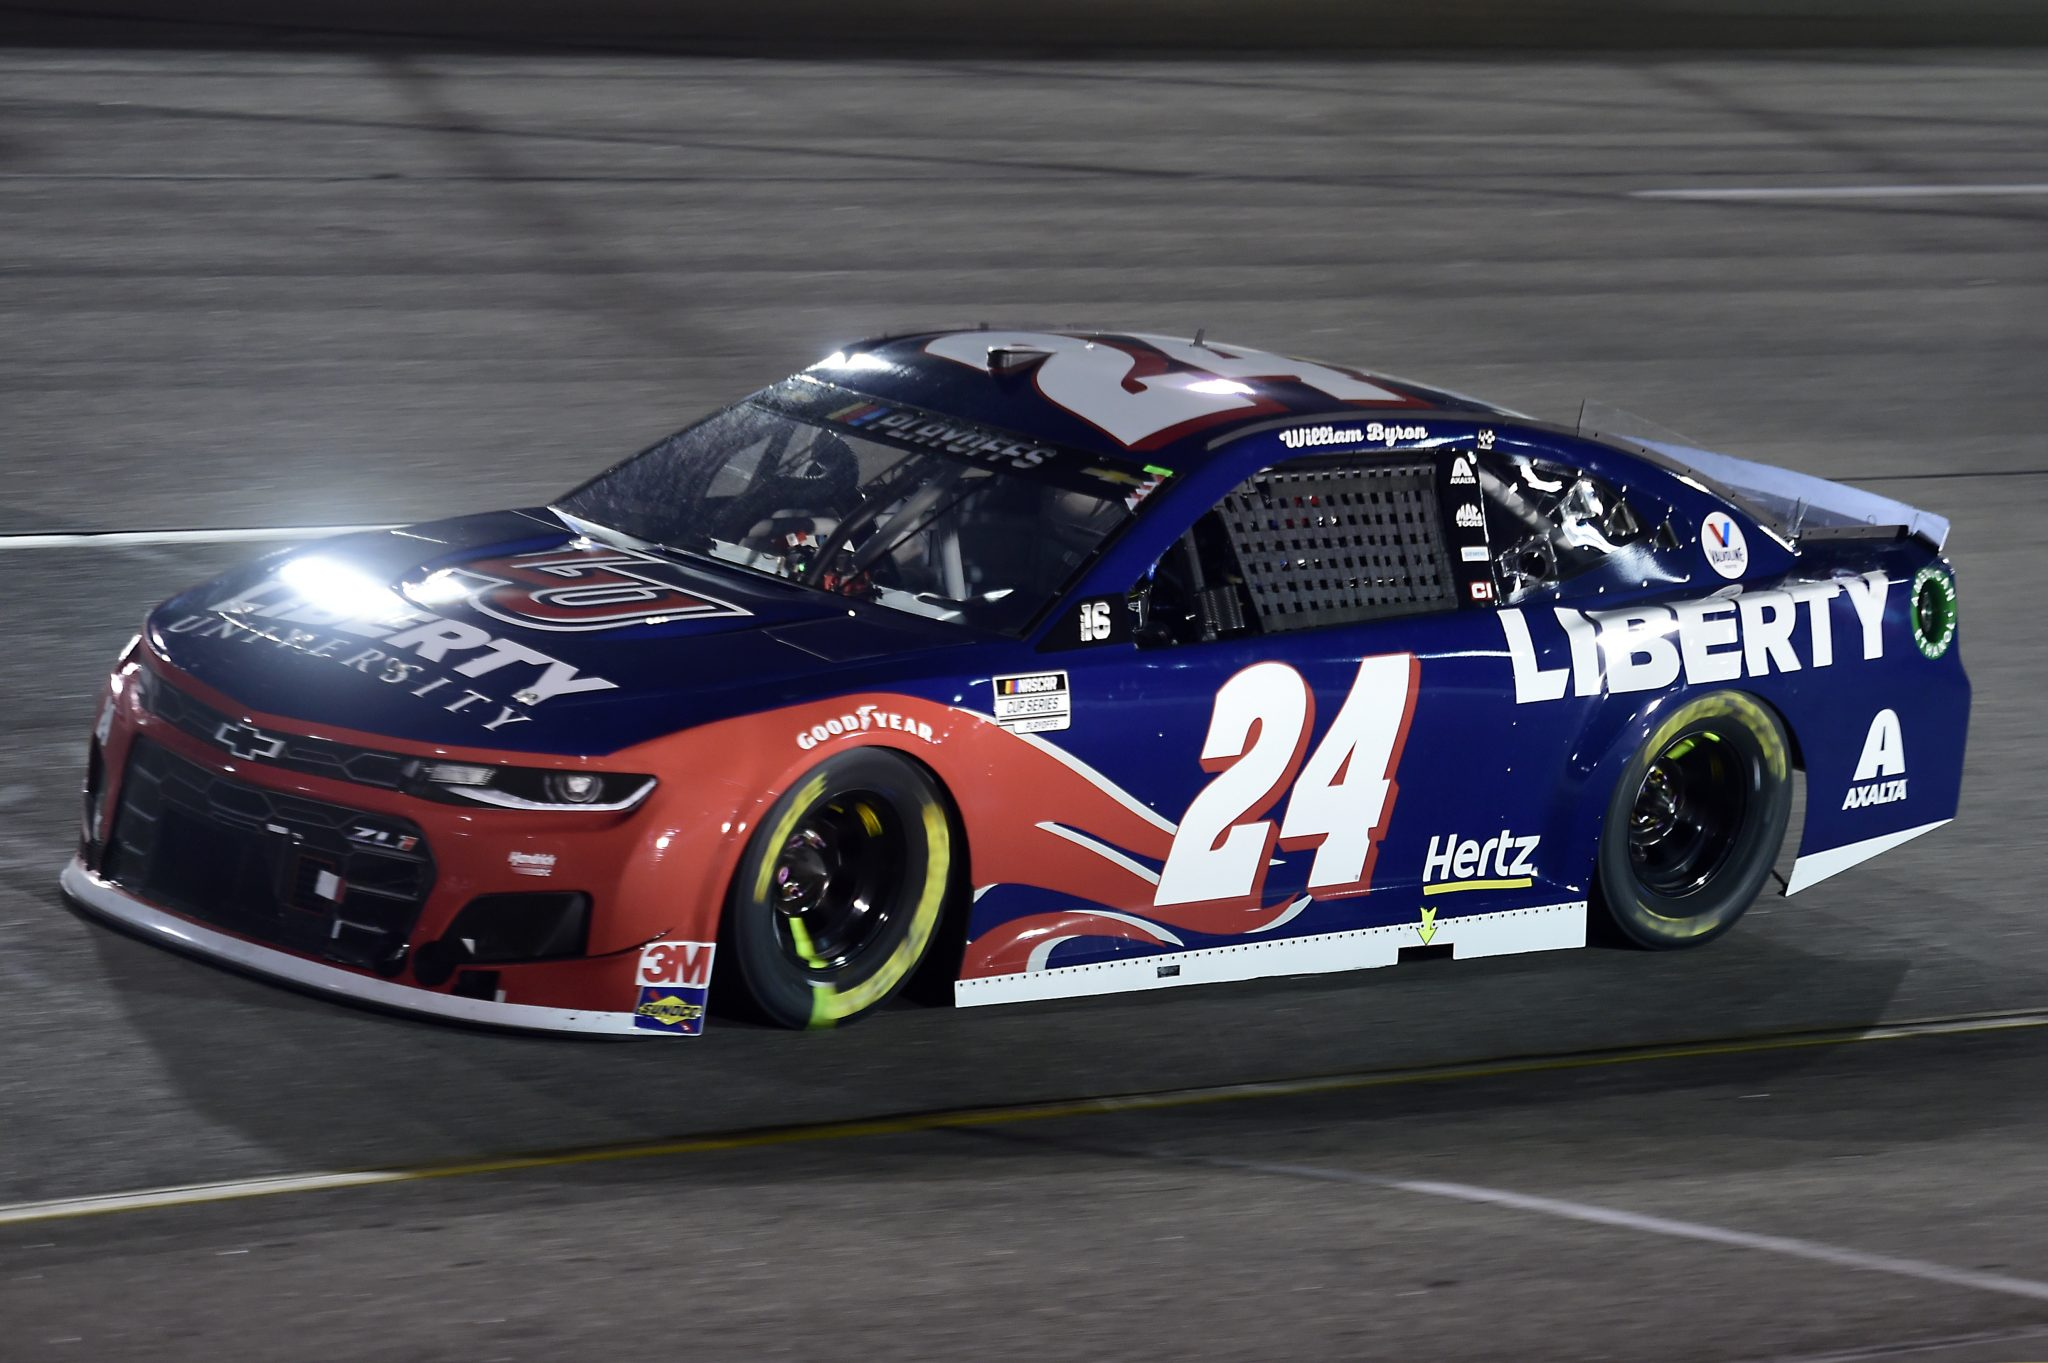 RICHMOND, VIRGINIA - SEPTEMBER 12: William Byron, driver of the #24 Liberty University Chevrolet, drives during the NASCAR Cup Series Federated Auto Parts 400 at Richmond Raceway on September 12, 2020 in Richmond, Virginia. (Photo by Jared C. Tilton/Getty Images) | Getty Images